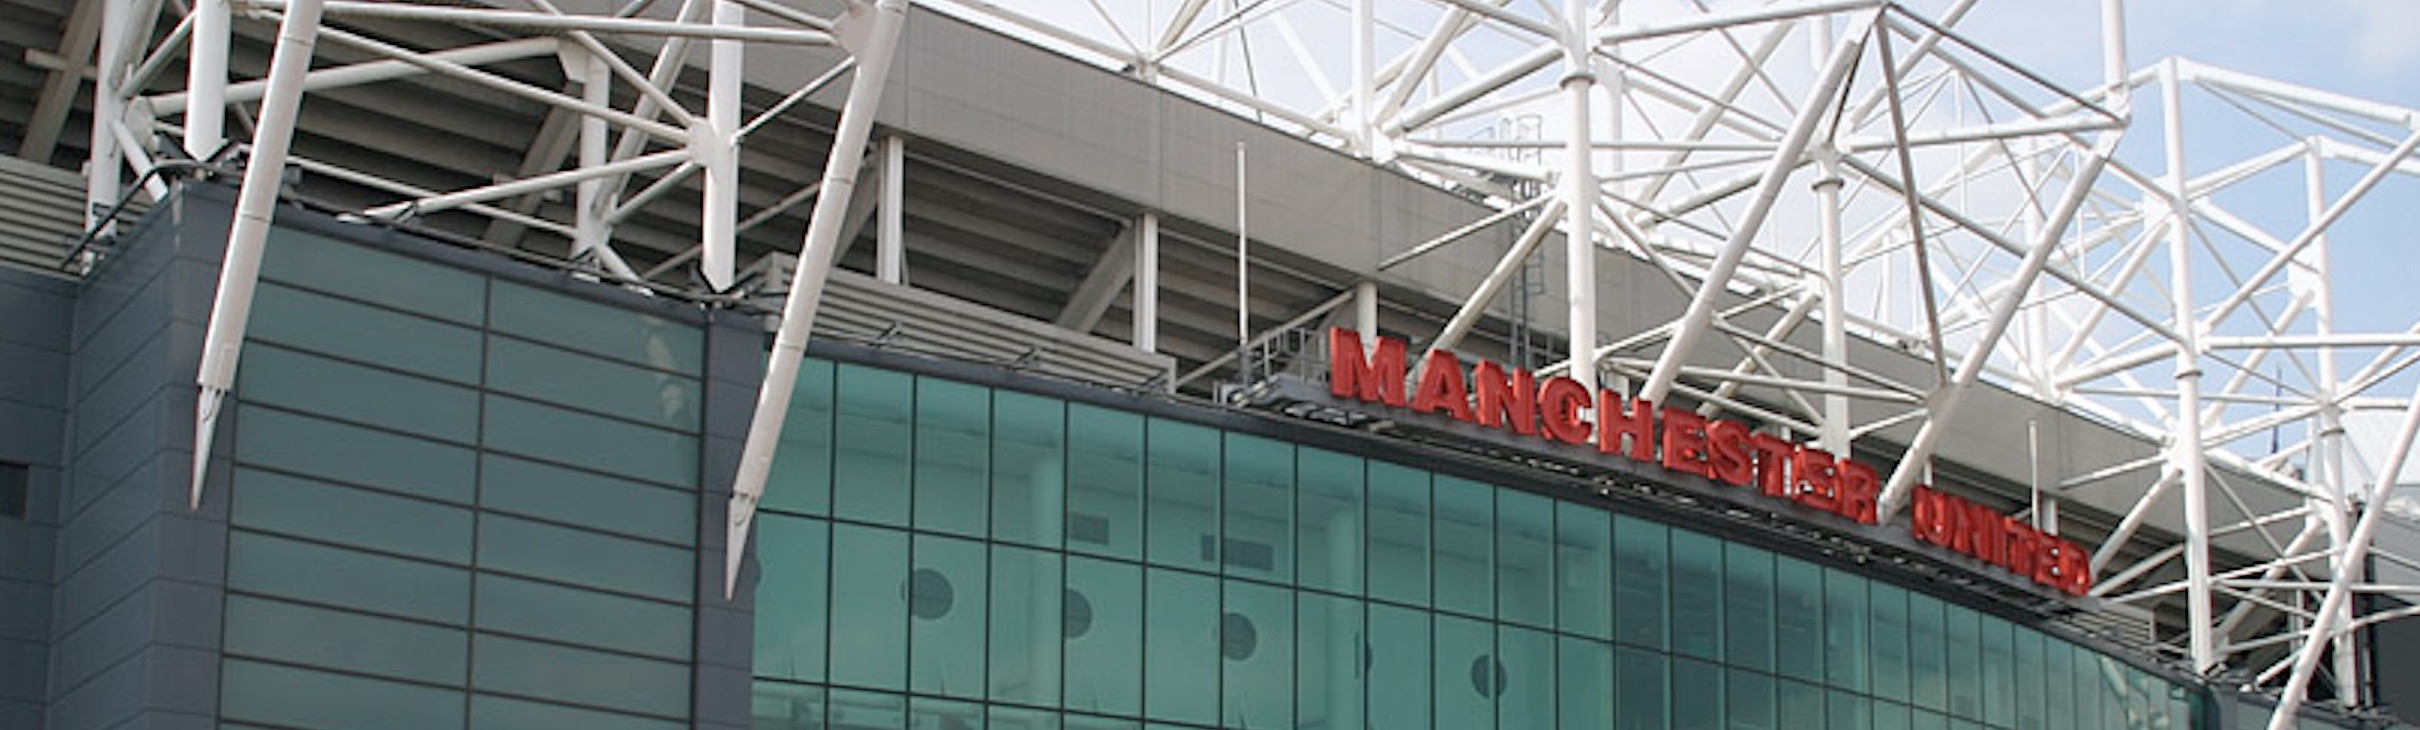 Man United v Aston Villa/ Daytrip by Coach & Ferry